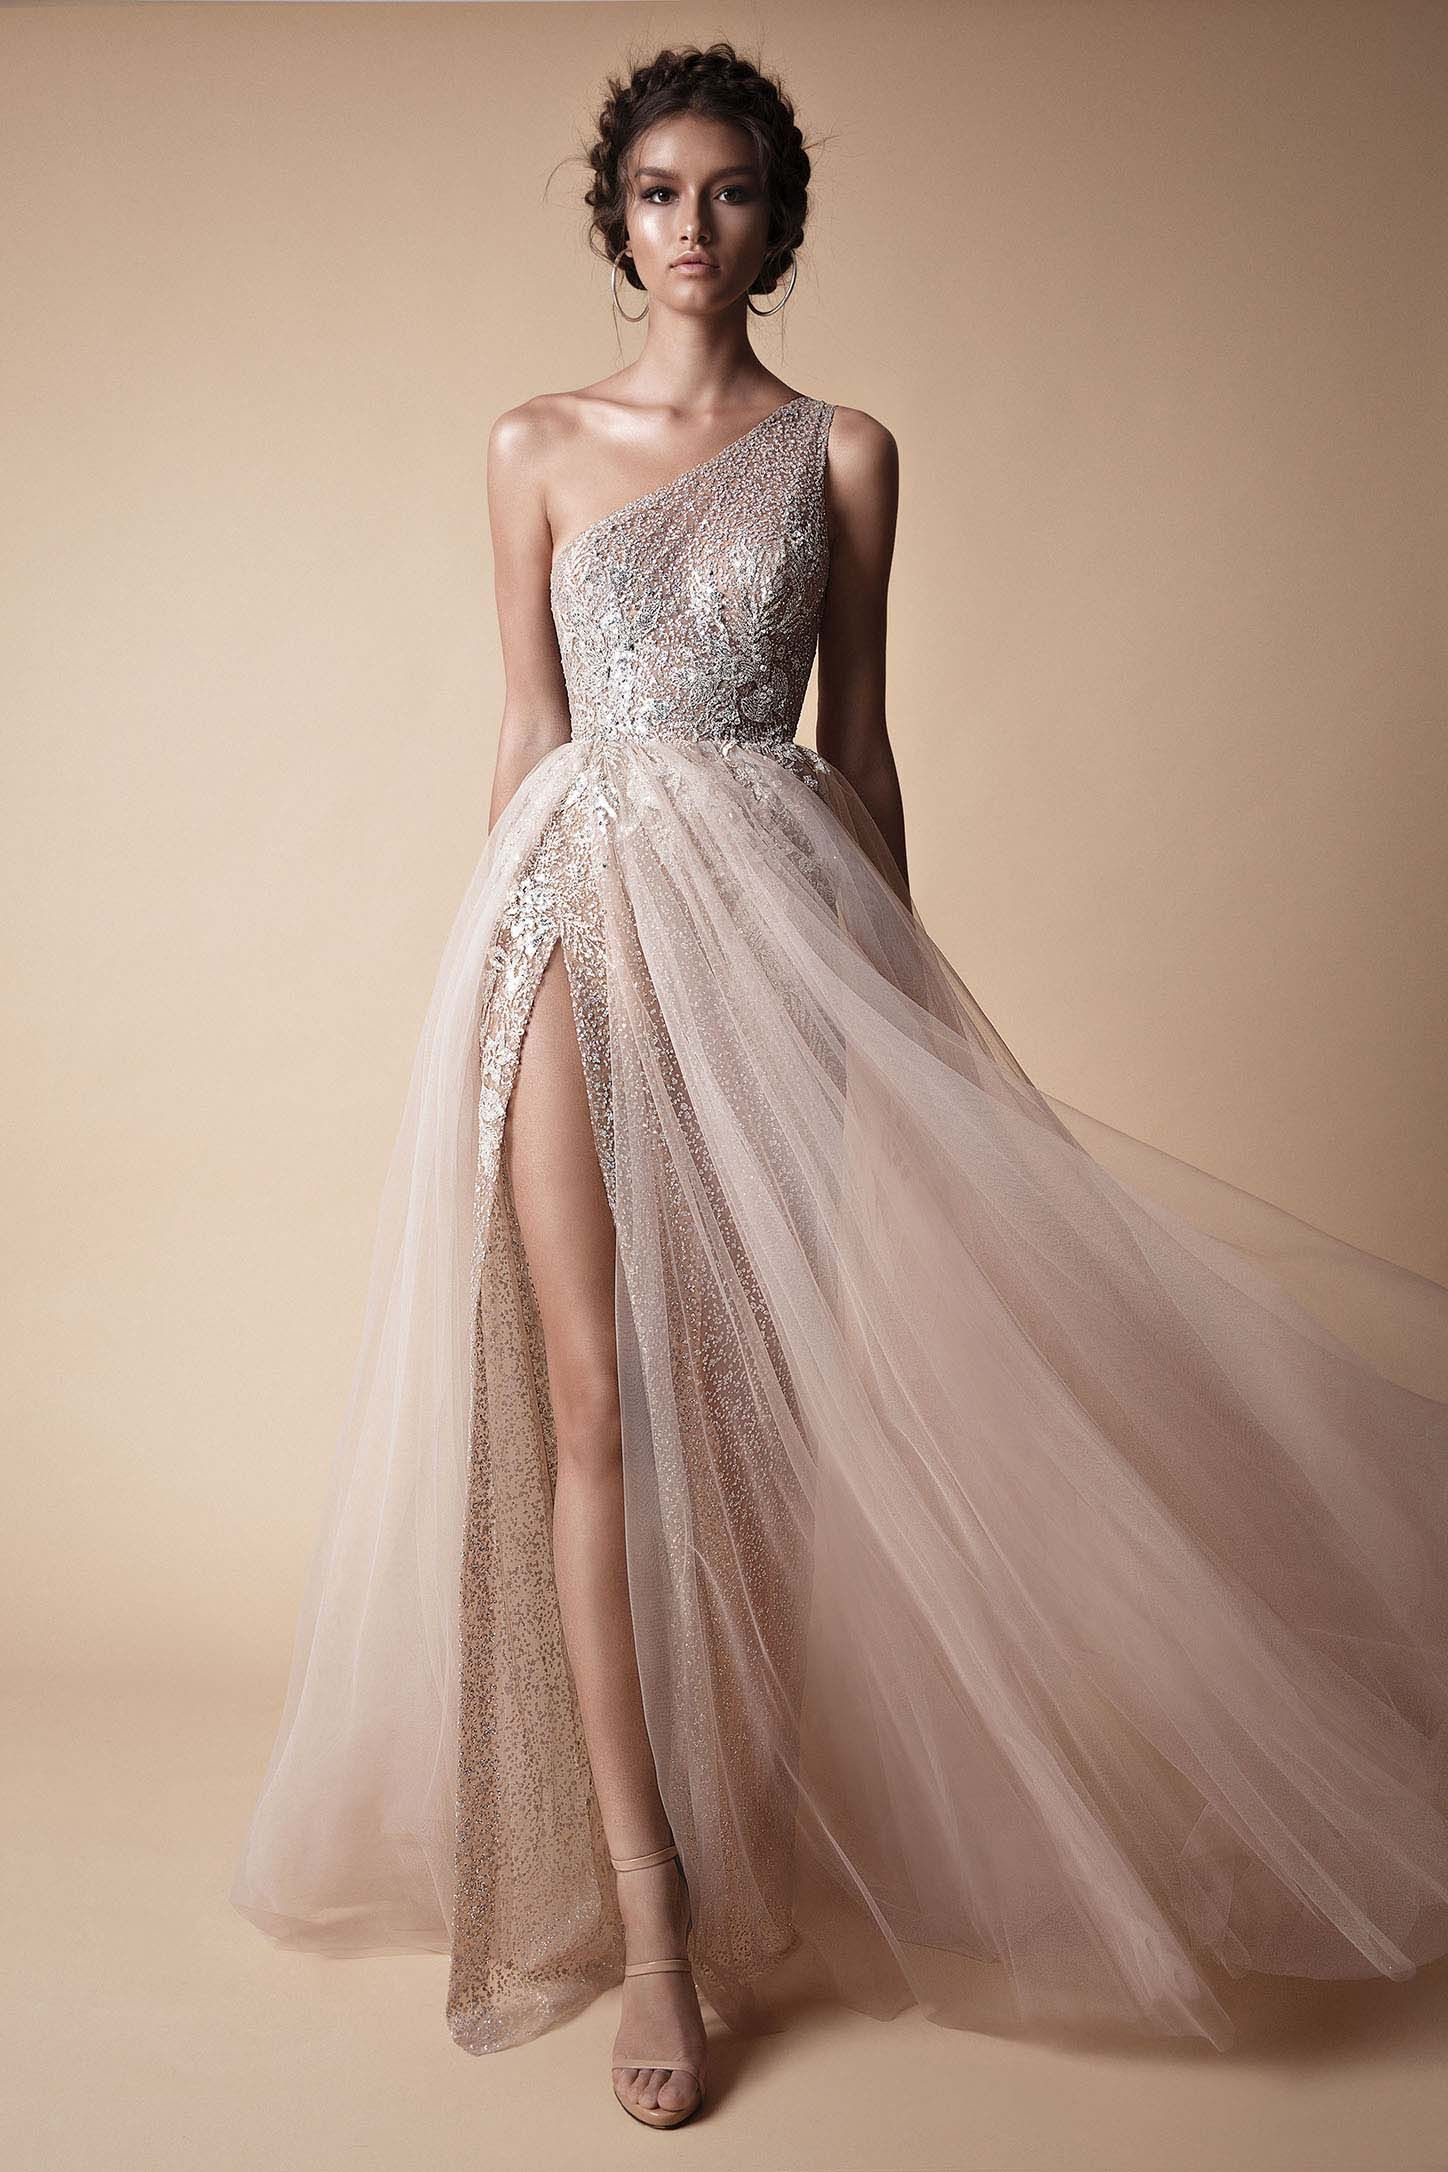 Great evening Gowns for Wedding | Wedding Photography